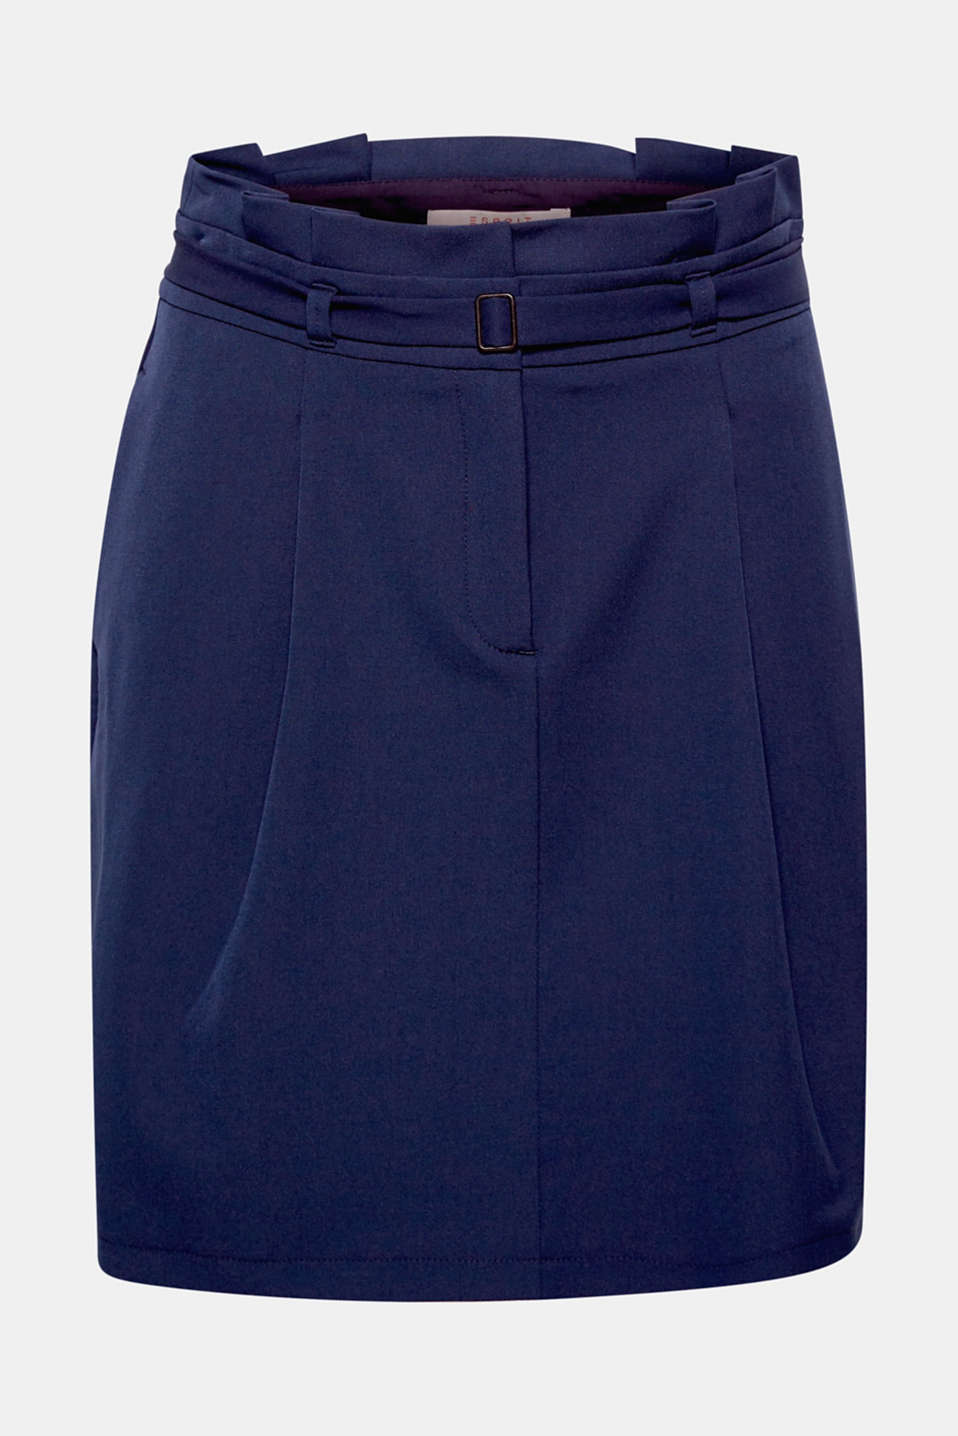 Cutting edge and chic: comfy, stretchy skirt with a trendy, pleated paper-bag waistband and a belt!